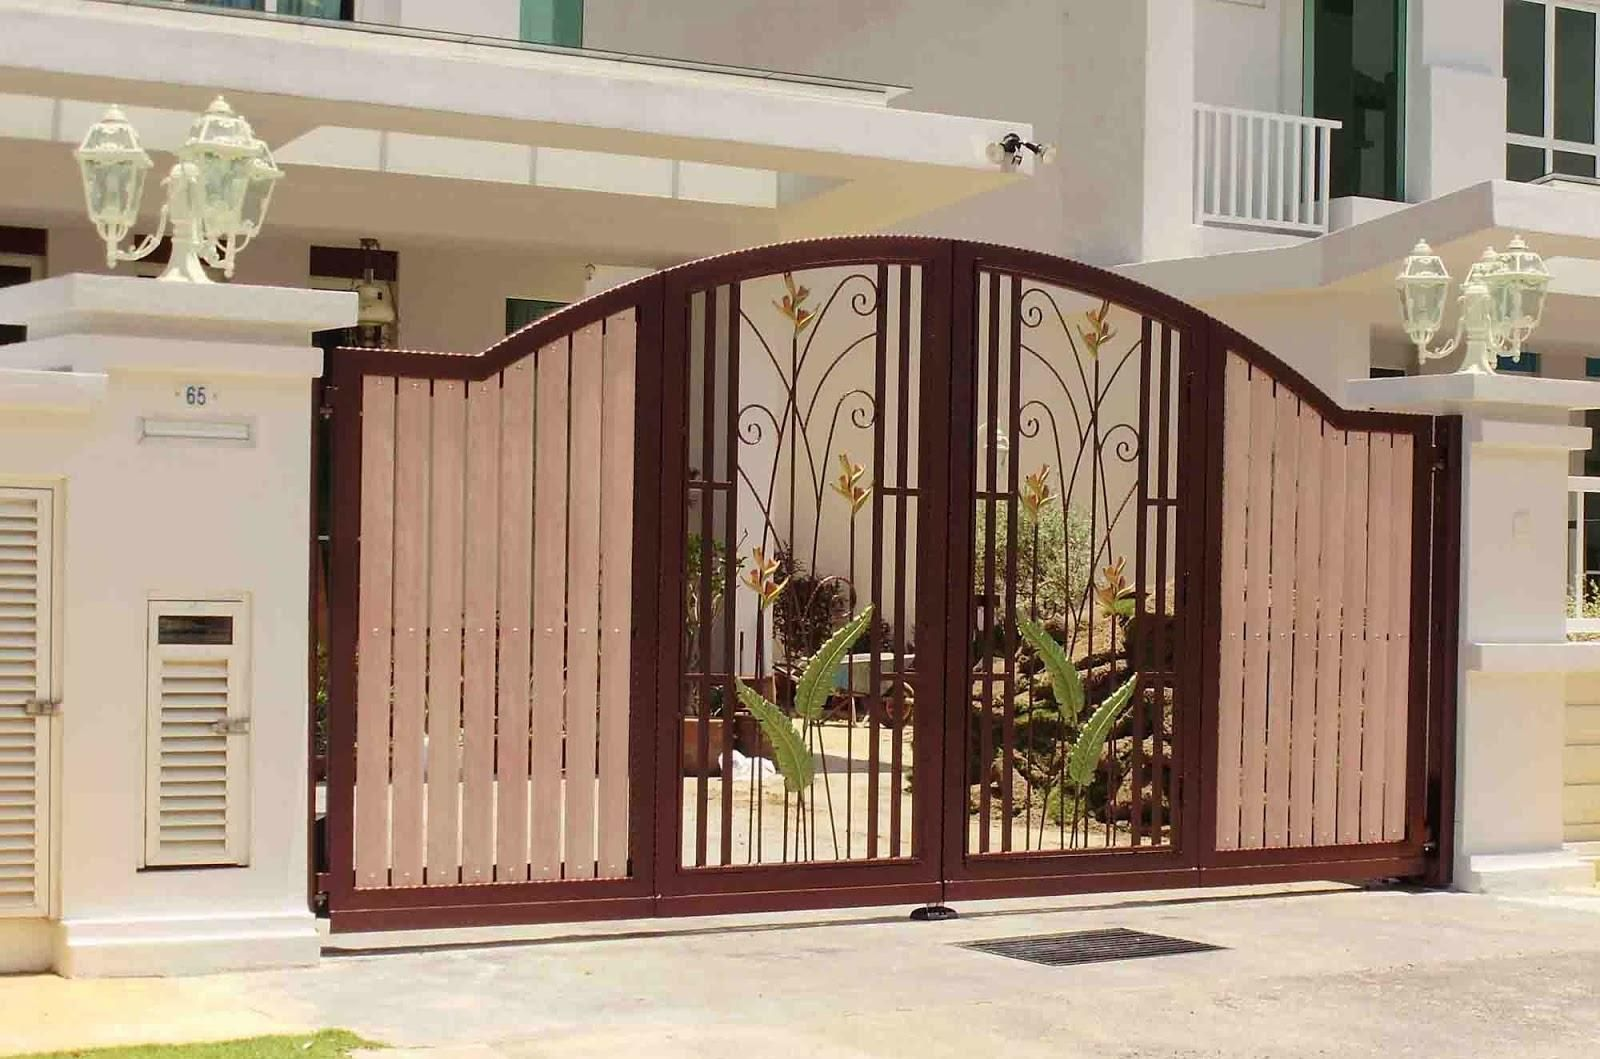 32 best images about pakistani home on pinterest house design - Home Front Gate Designs